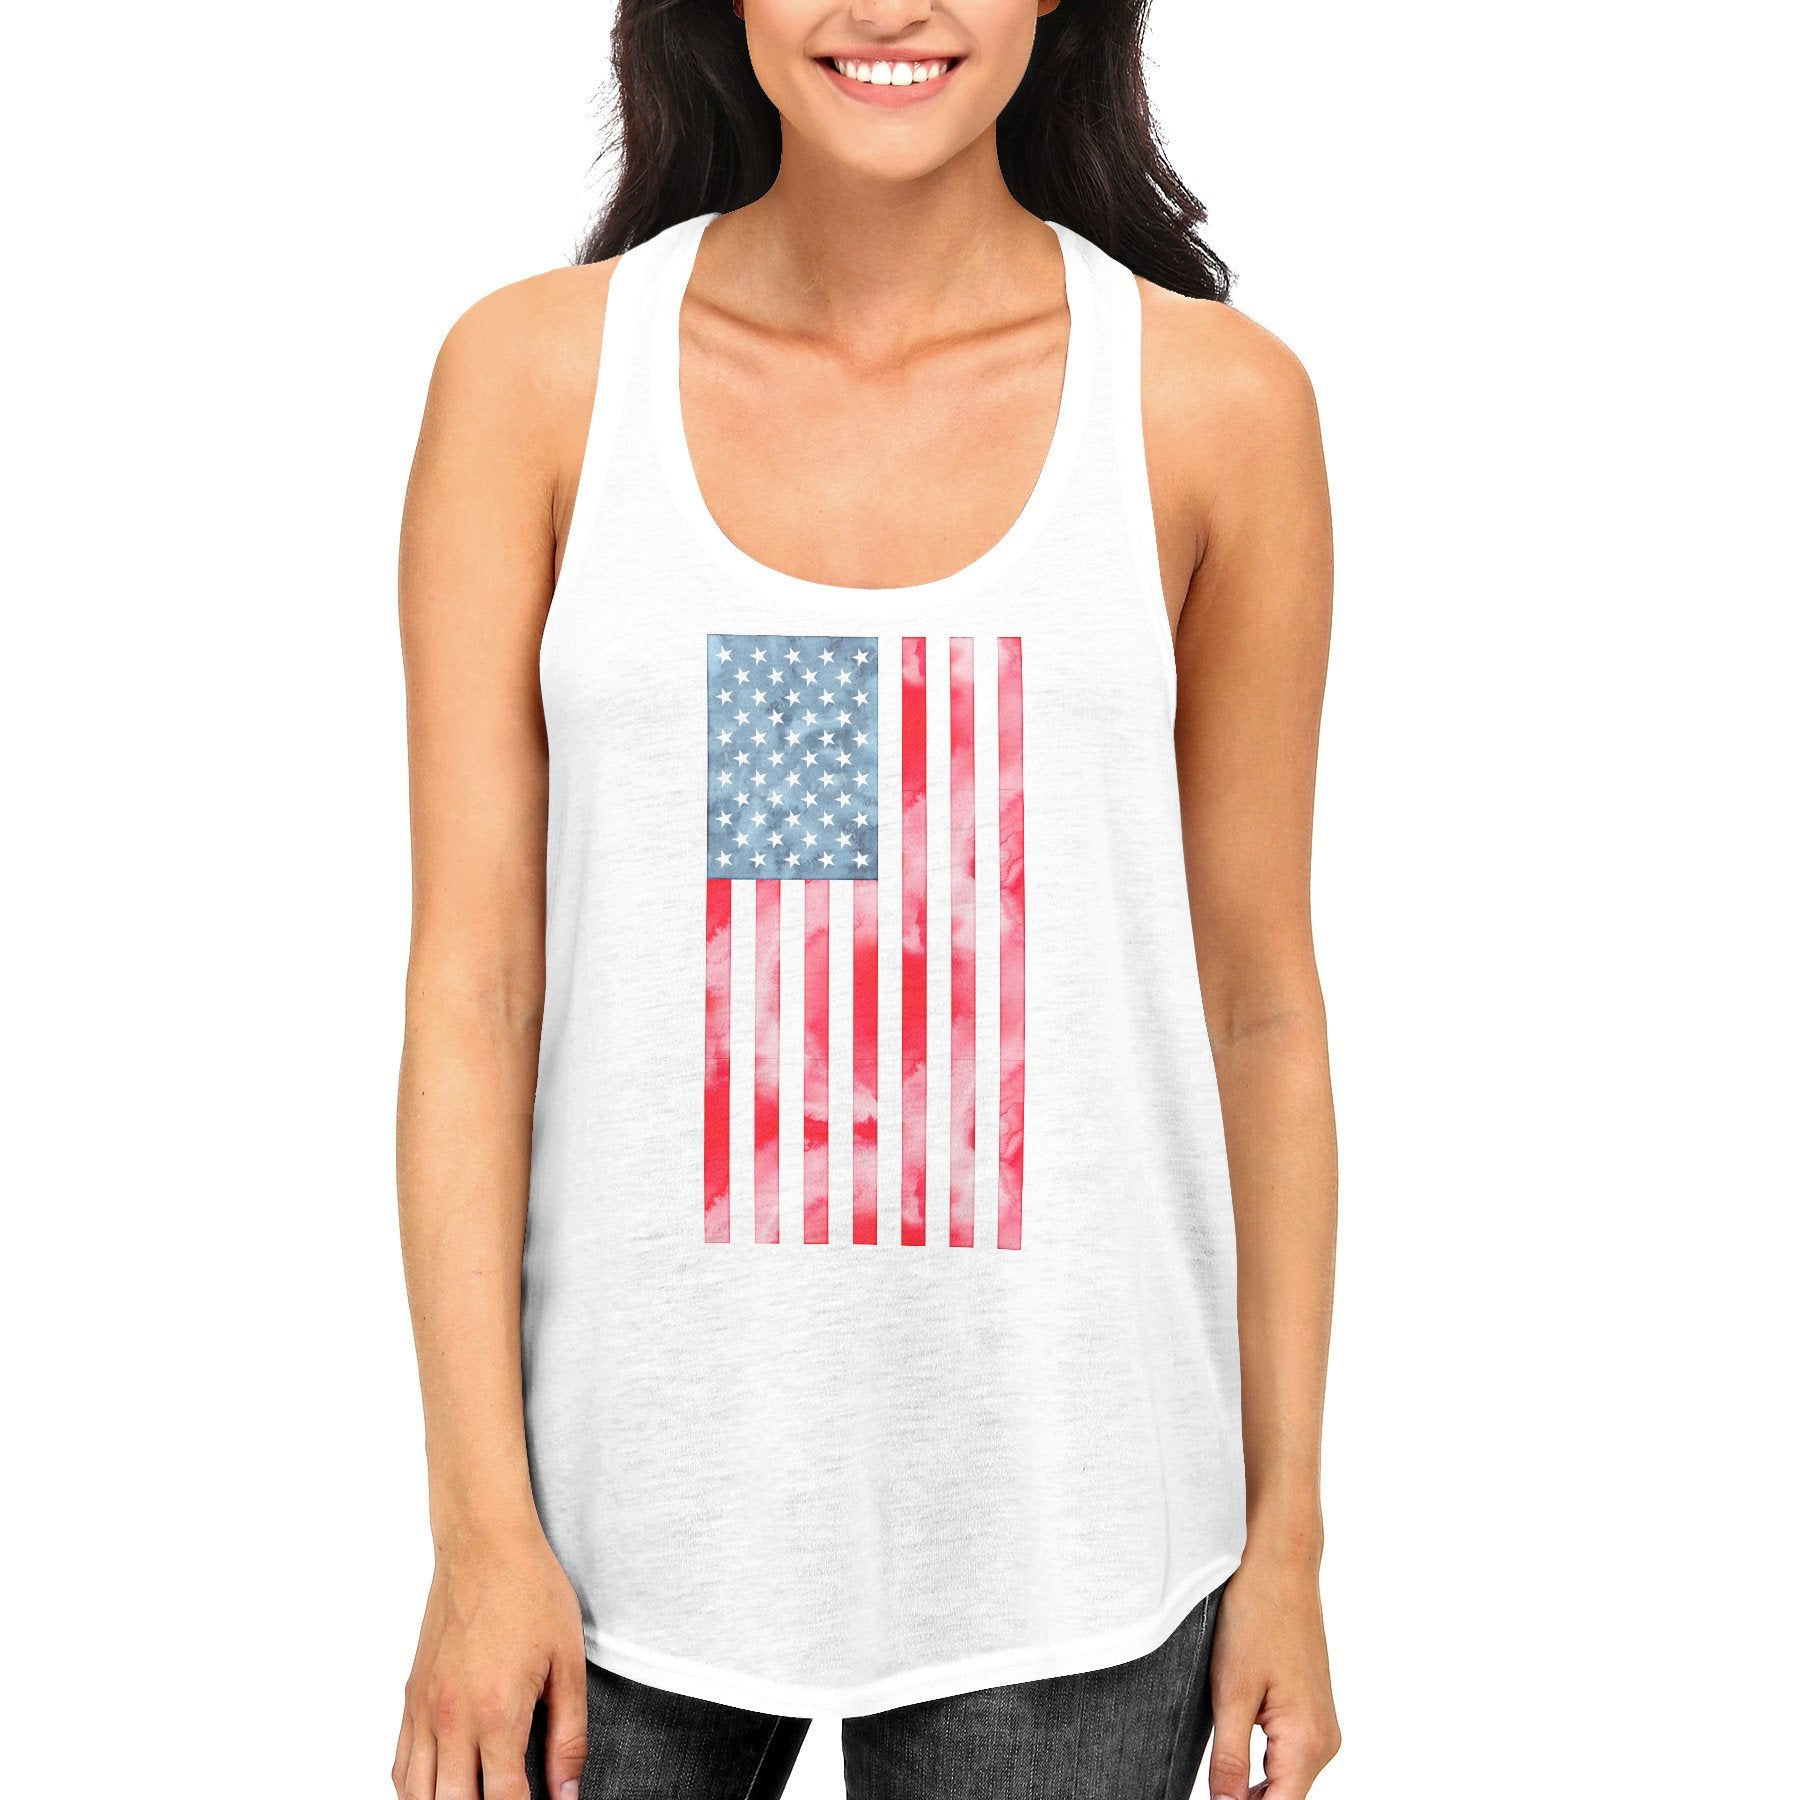 USA American Flag Women's White Tank